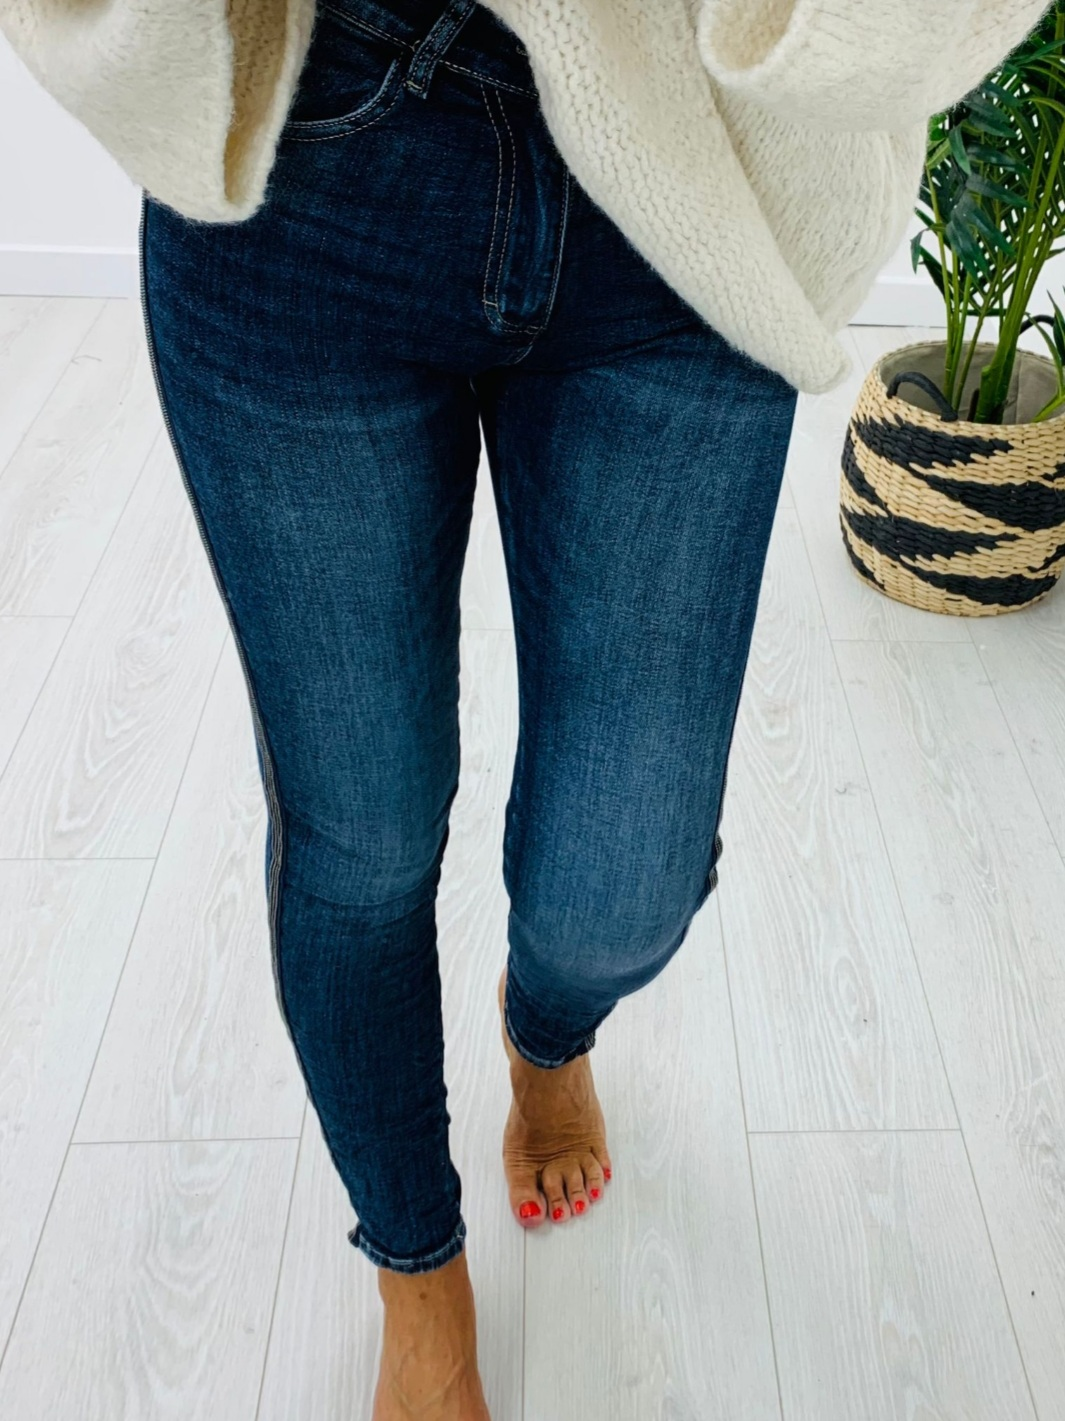 Dark wash melly&co jeans